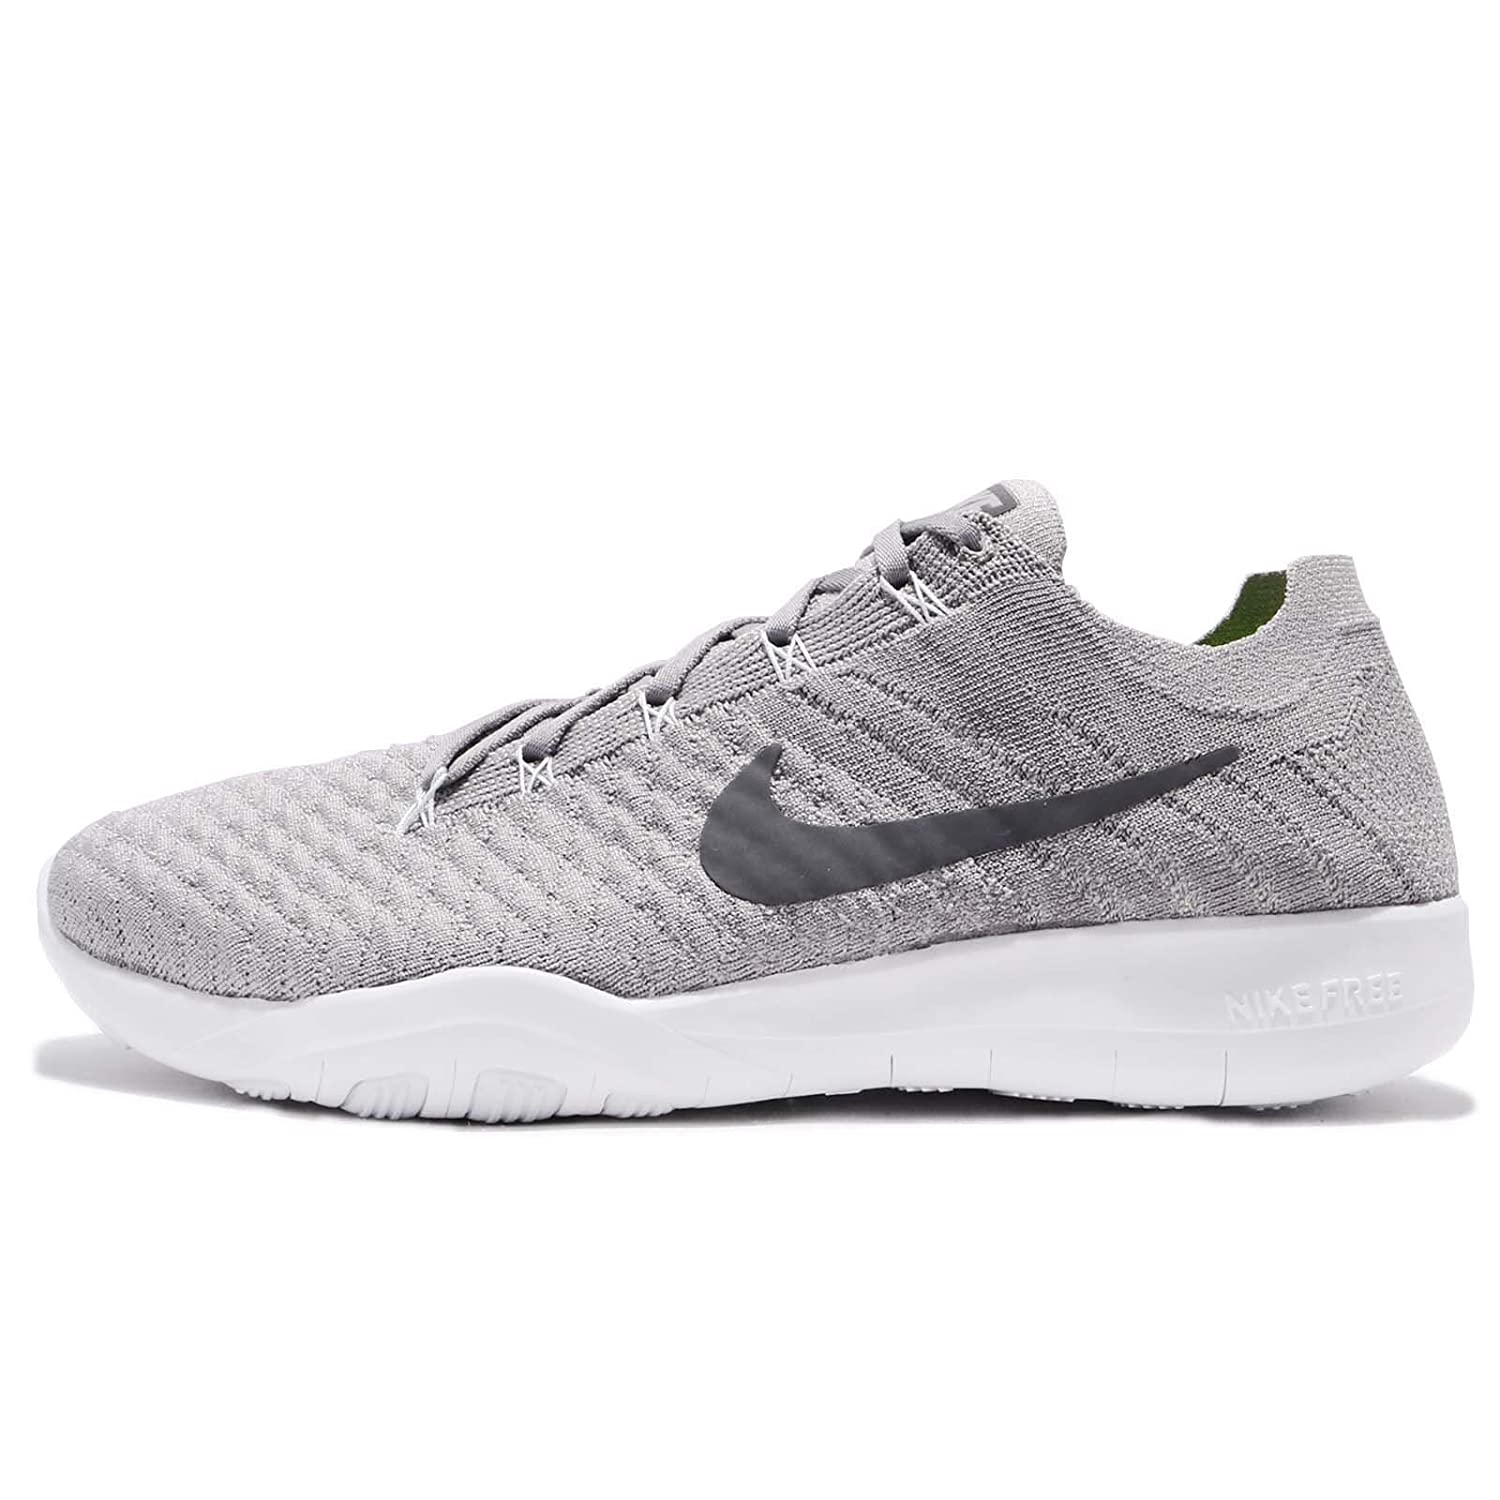 NIKE Free TR Flyknit 2 Womens Running Shoes B079Z67WNN 9.5 B(M) US|Atmosphere Grey/Gunsmoke-white